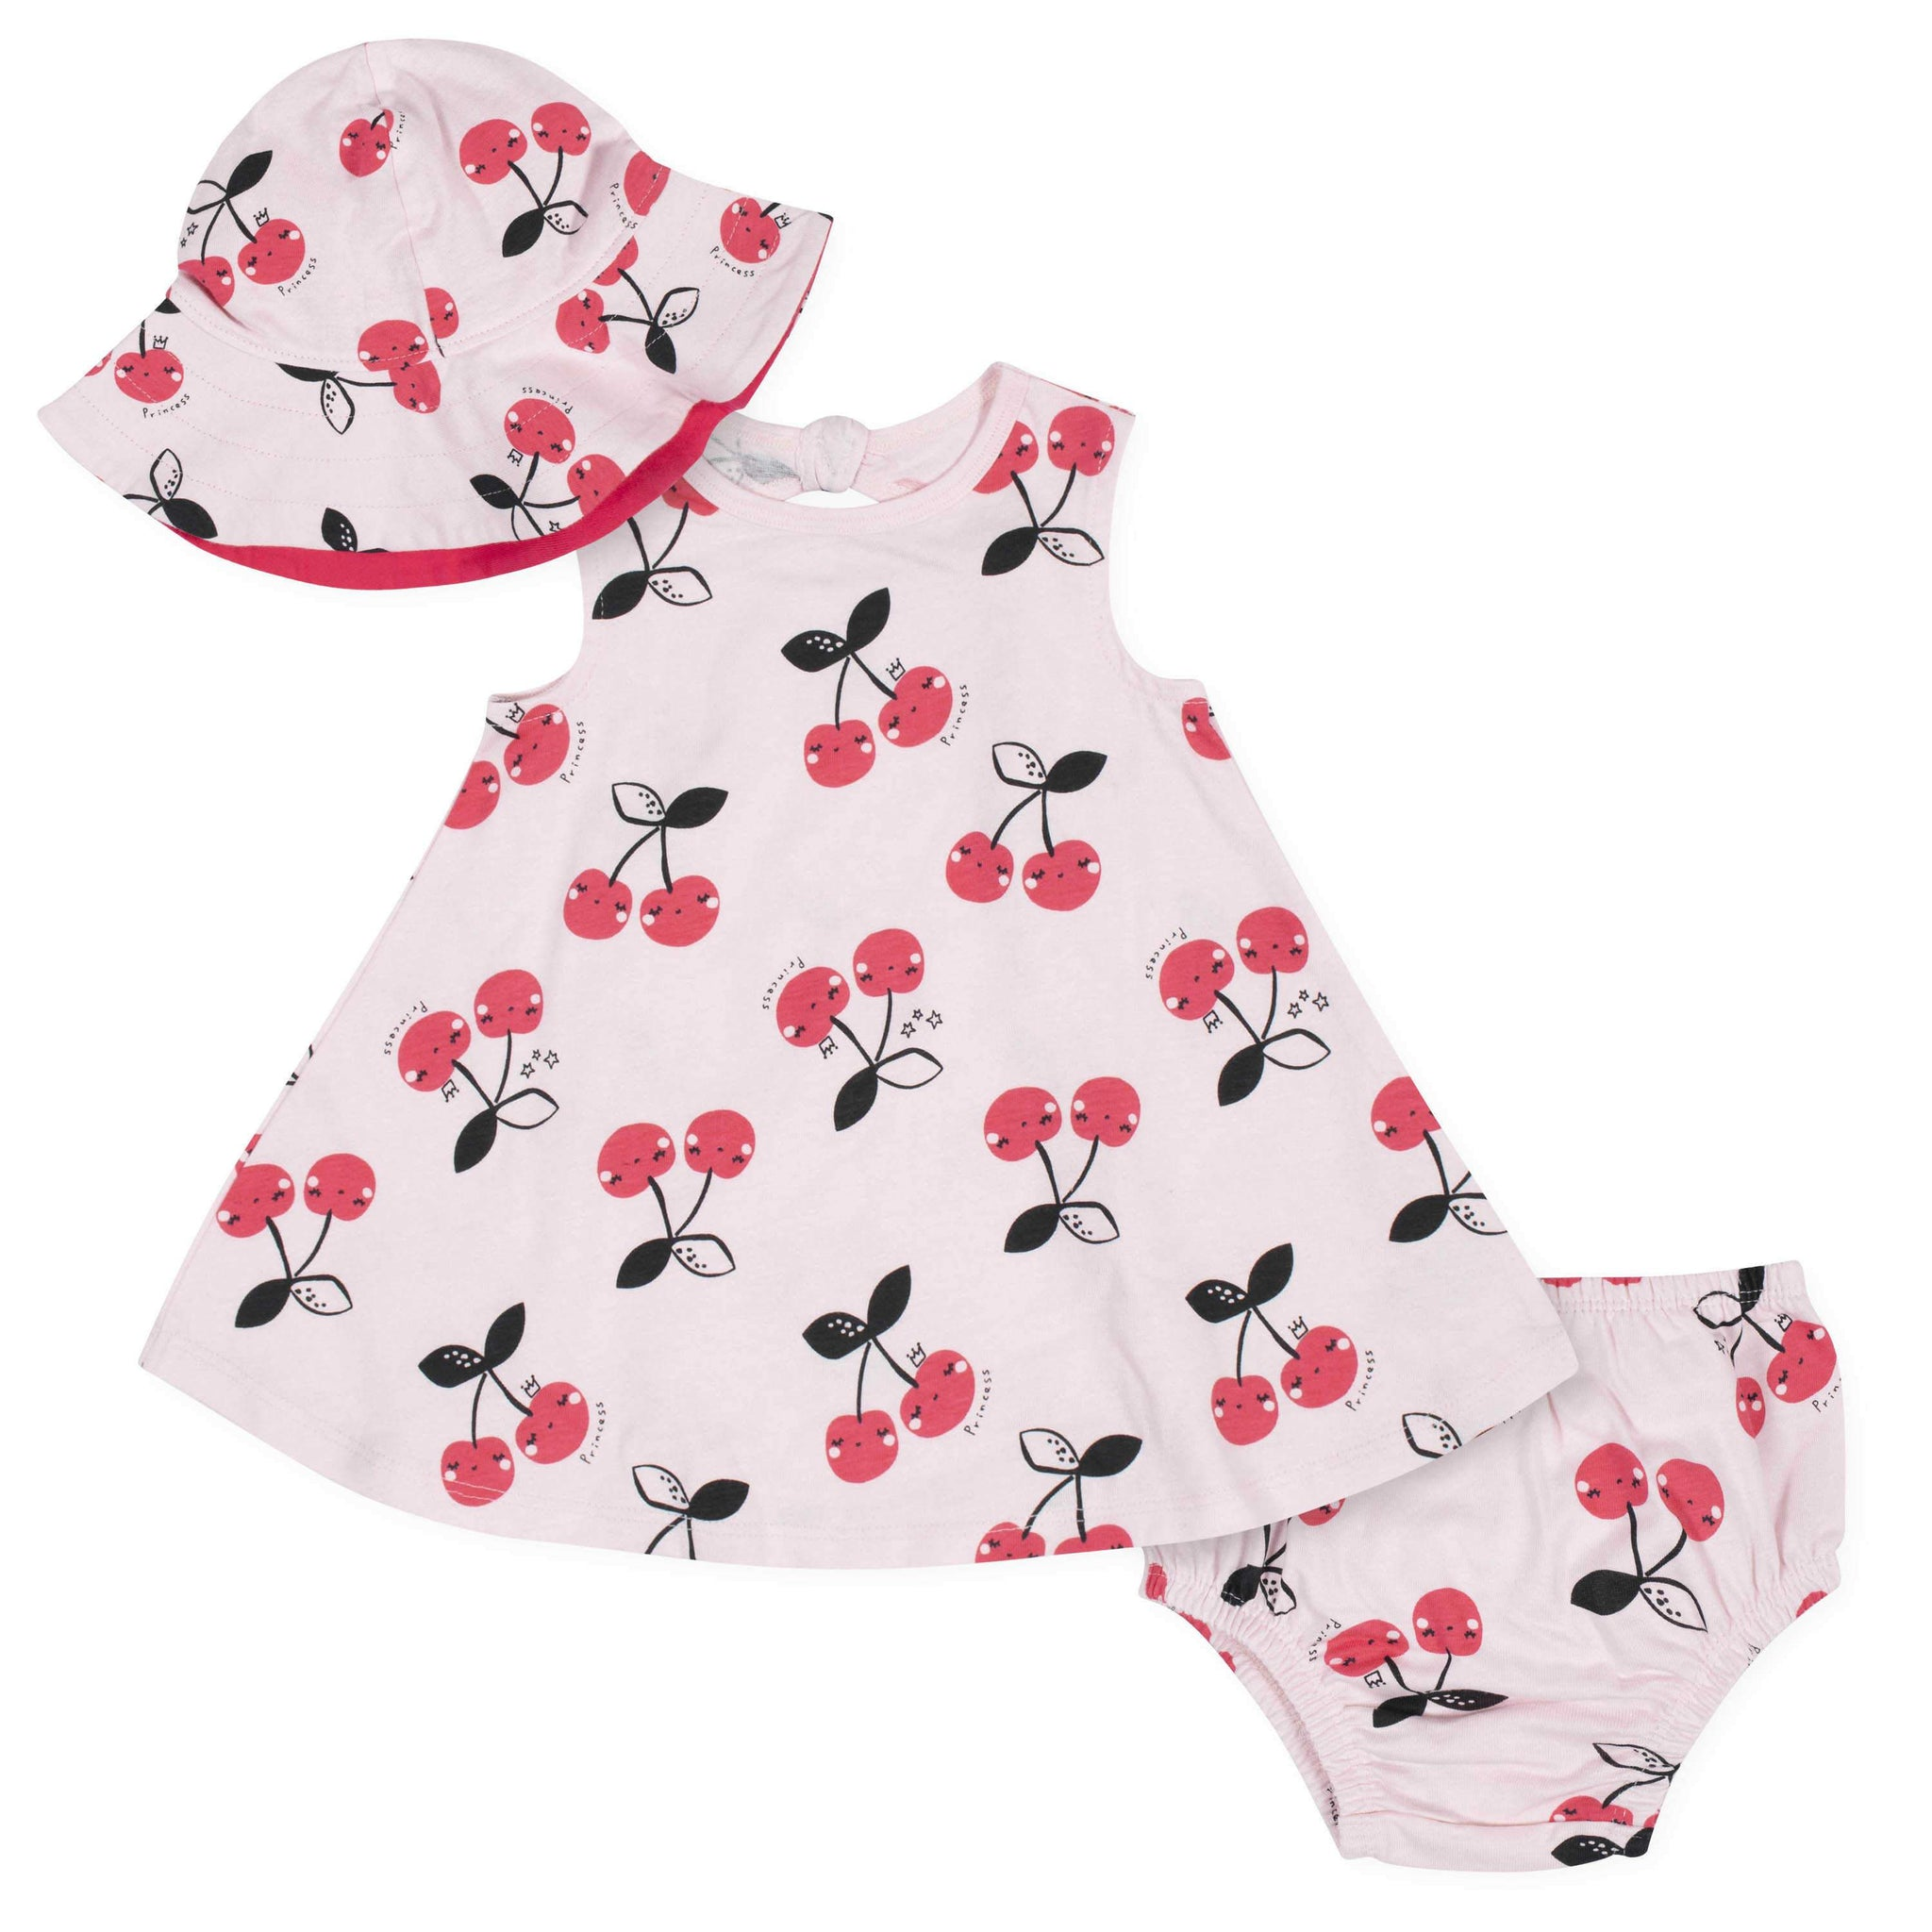 3-Piece Baby Girls' Cherry Dress, Diaper Cover, and Hat Set-Gerber Childrenswear